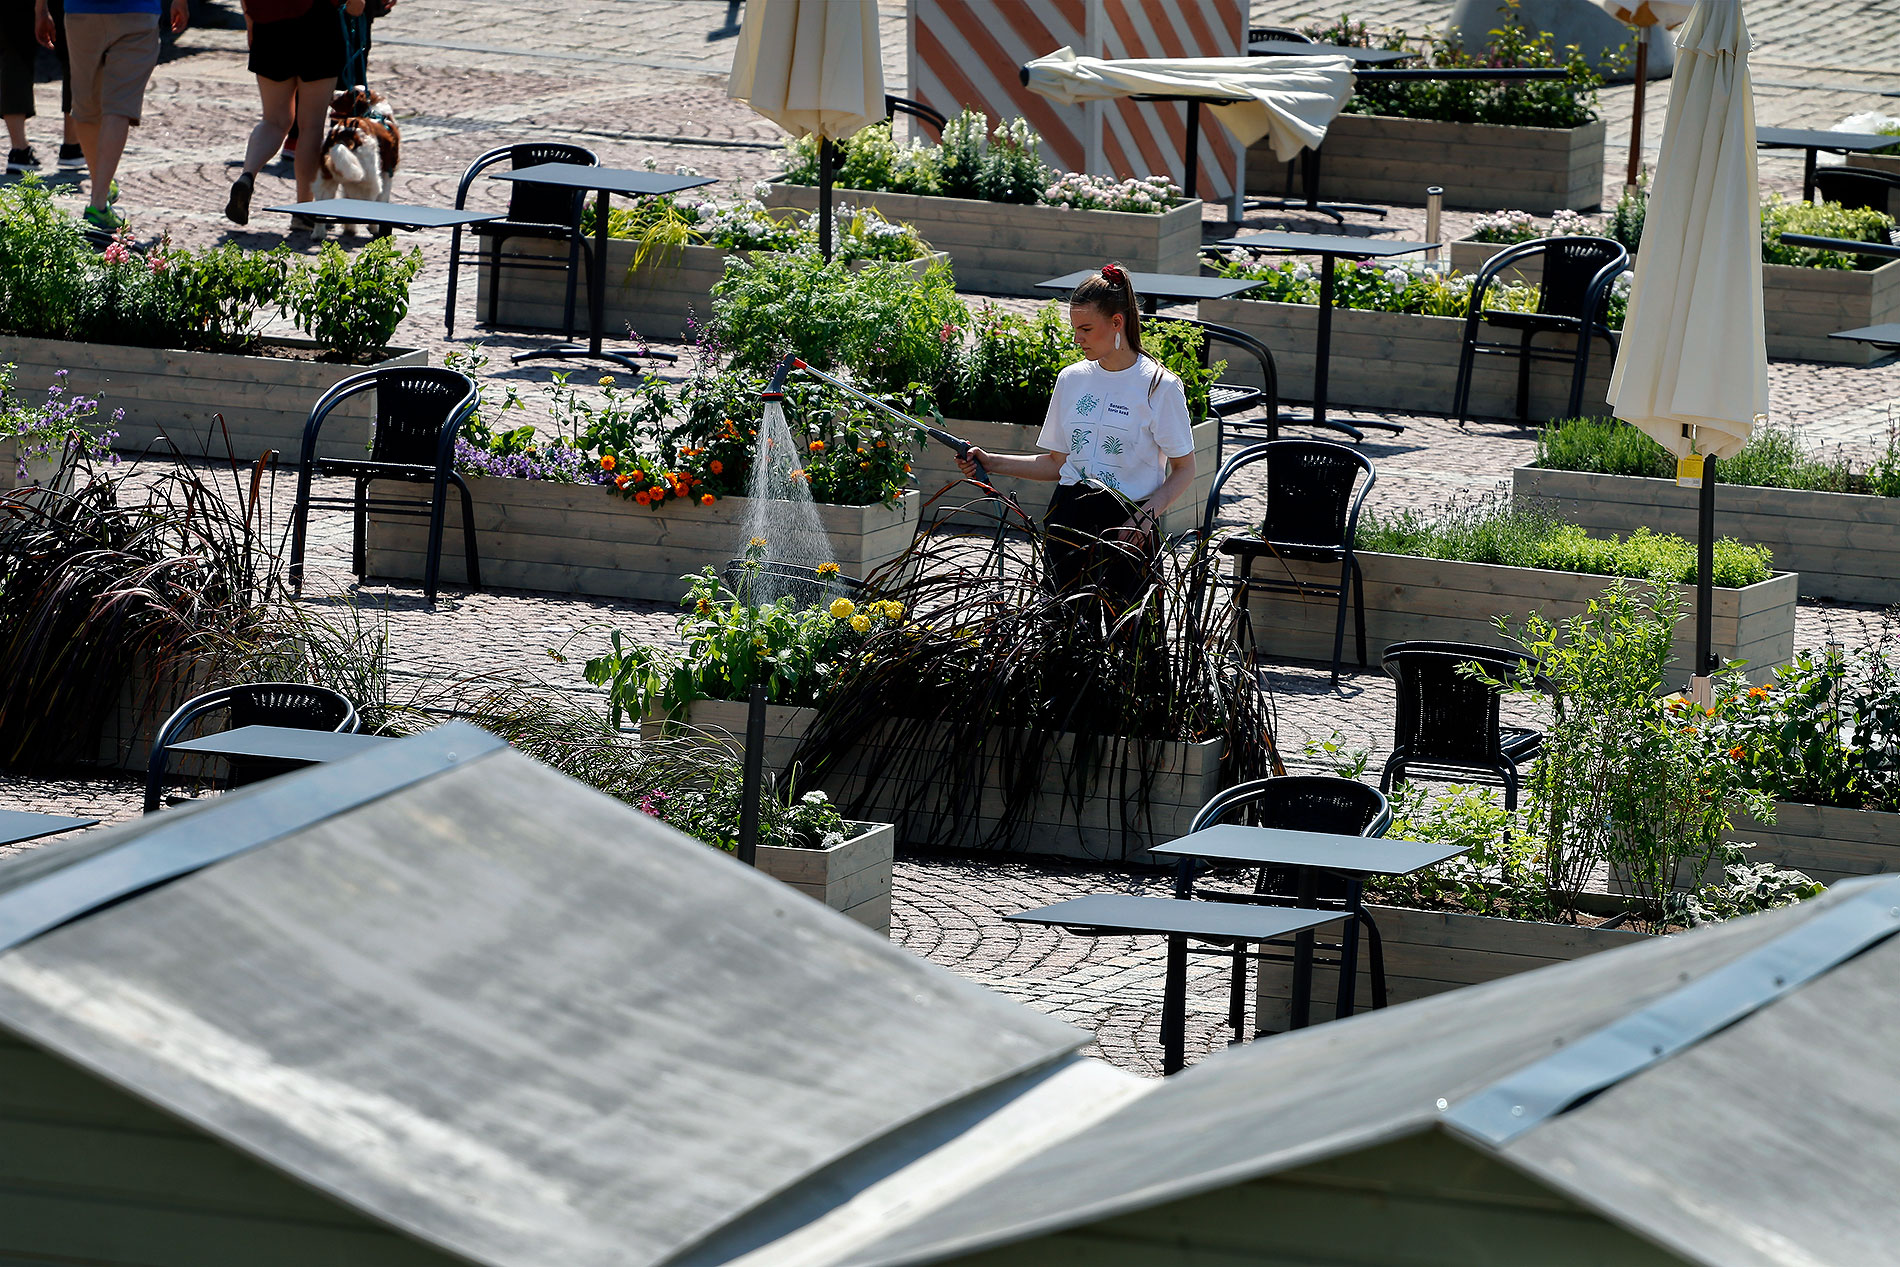 The allotment garden is being watered in the Senate Square on Friday, June 26, 2020. Picture: Tony Öhberg/Finland Today